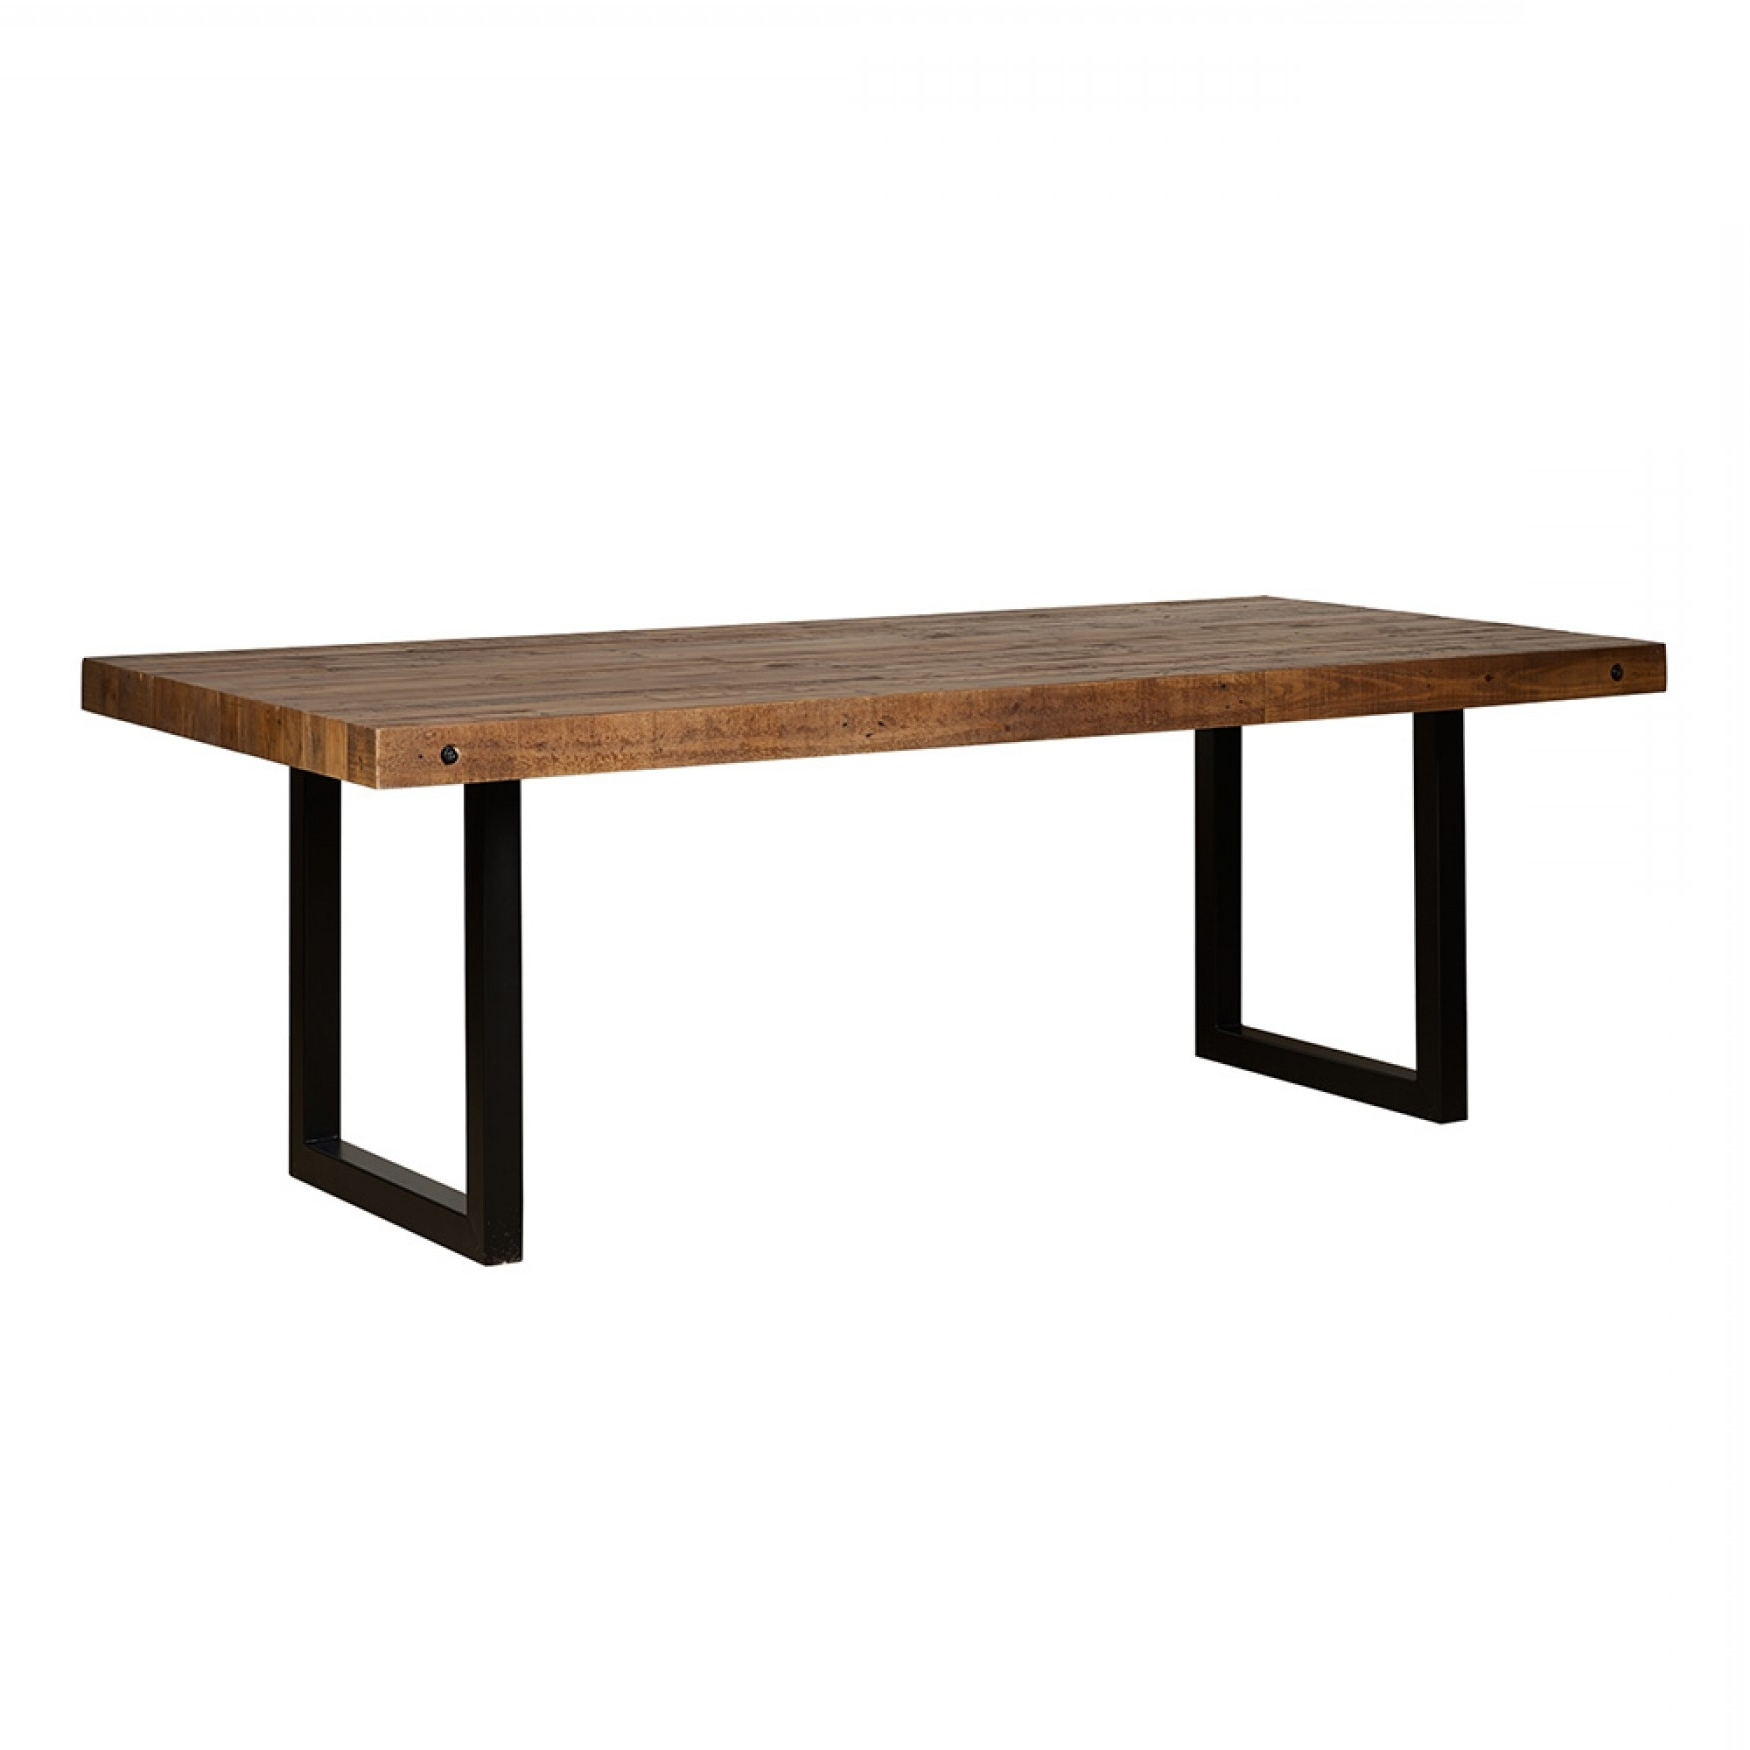 Famous Mark Webster New York Dining Table – Large Fixed Top 225Cm Within New York Dining Tables (View 4 of 25)